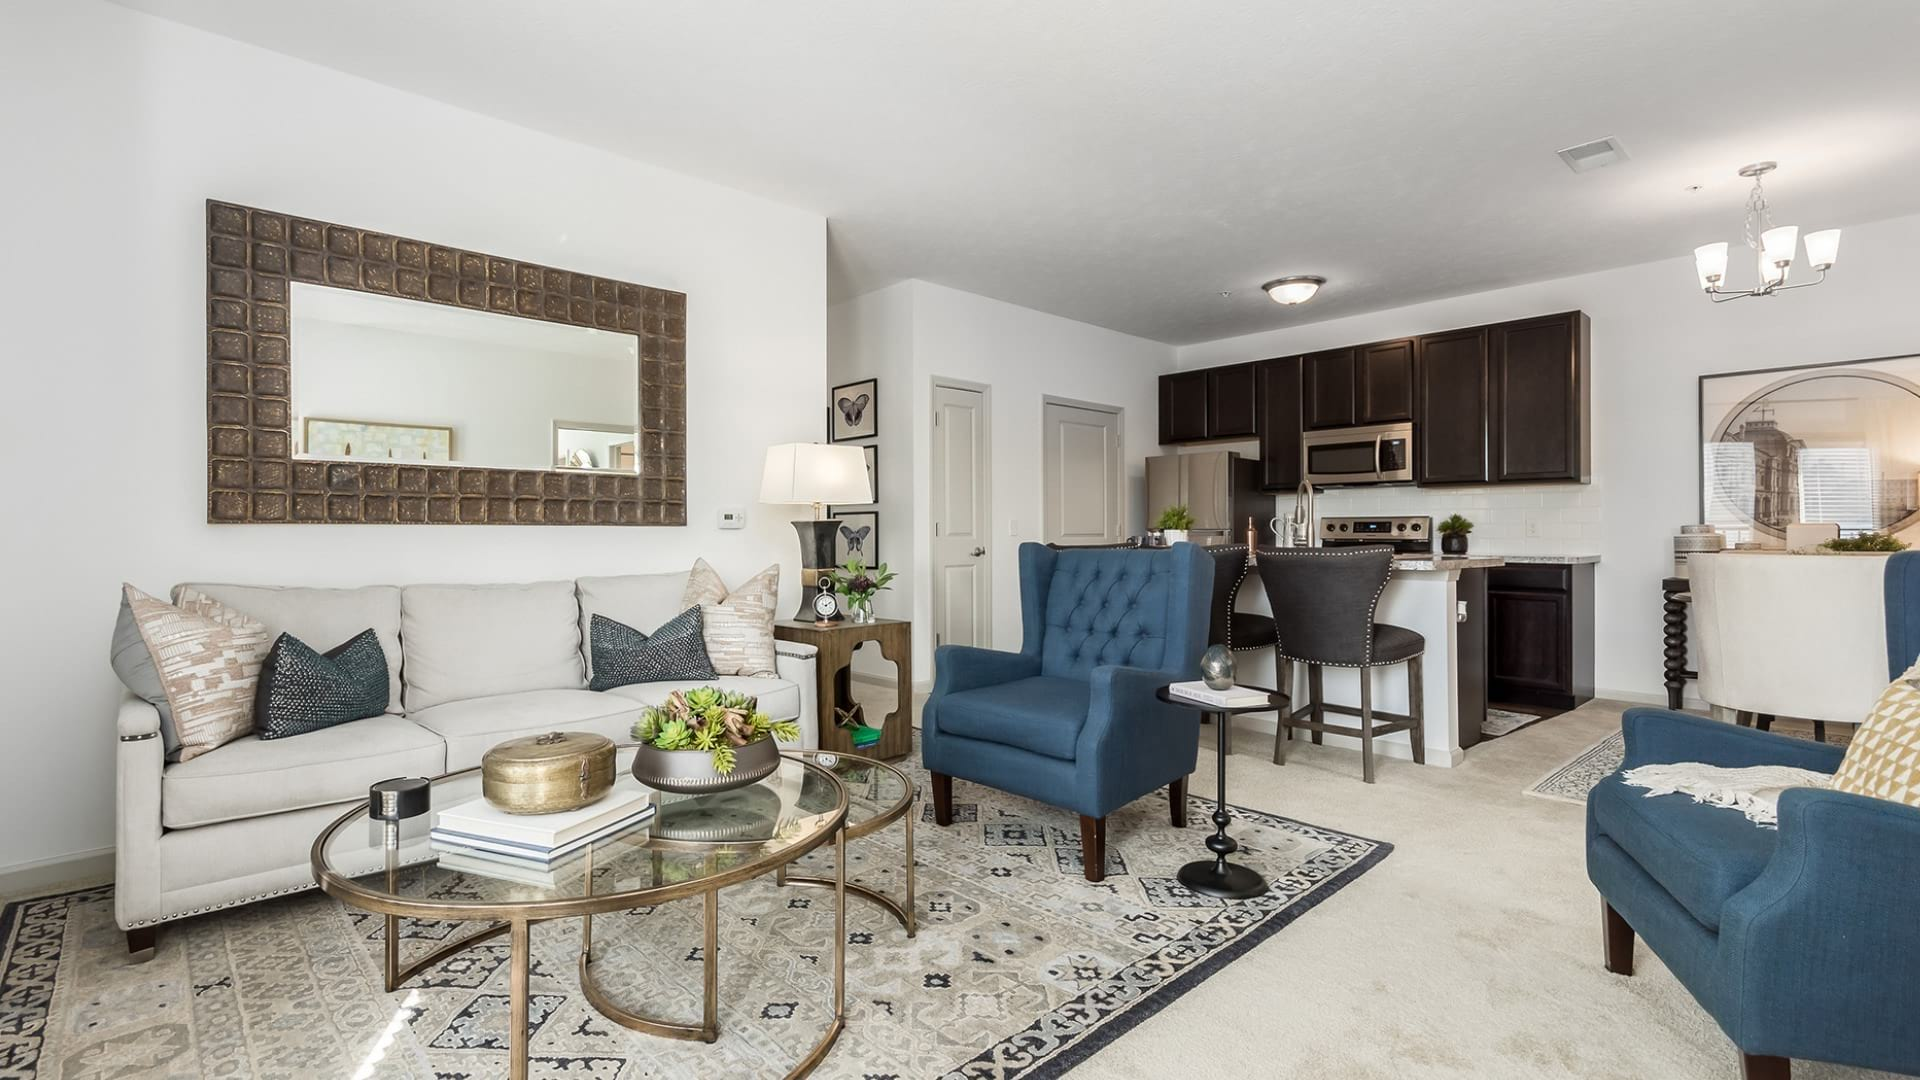 large, carpeted living room open to kitchen